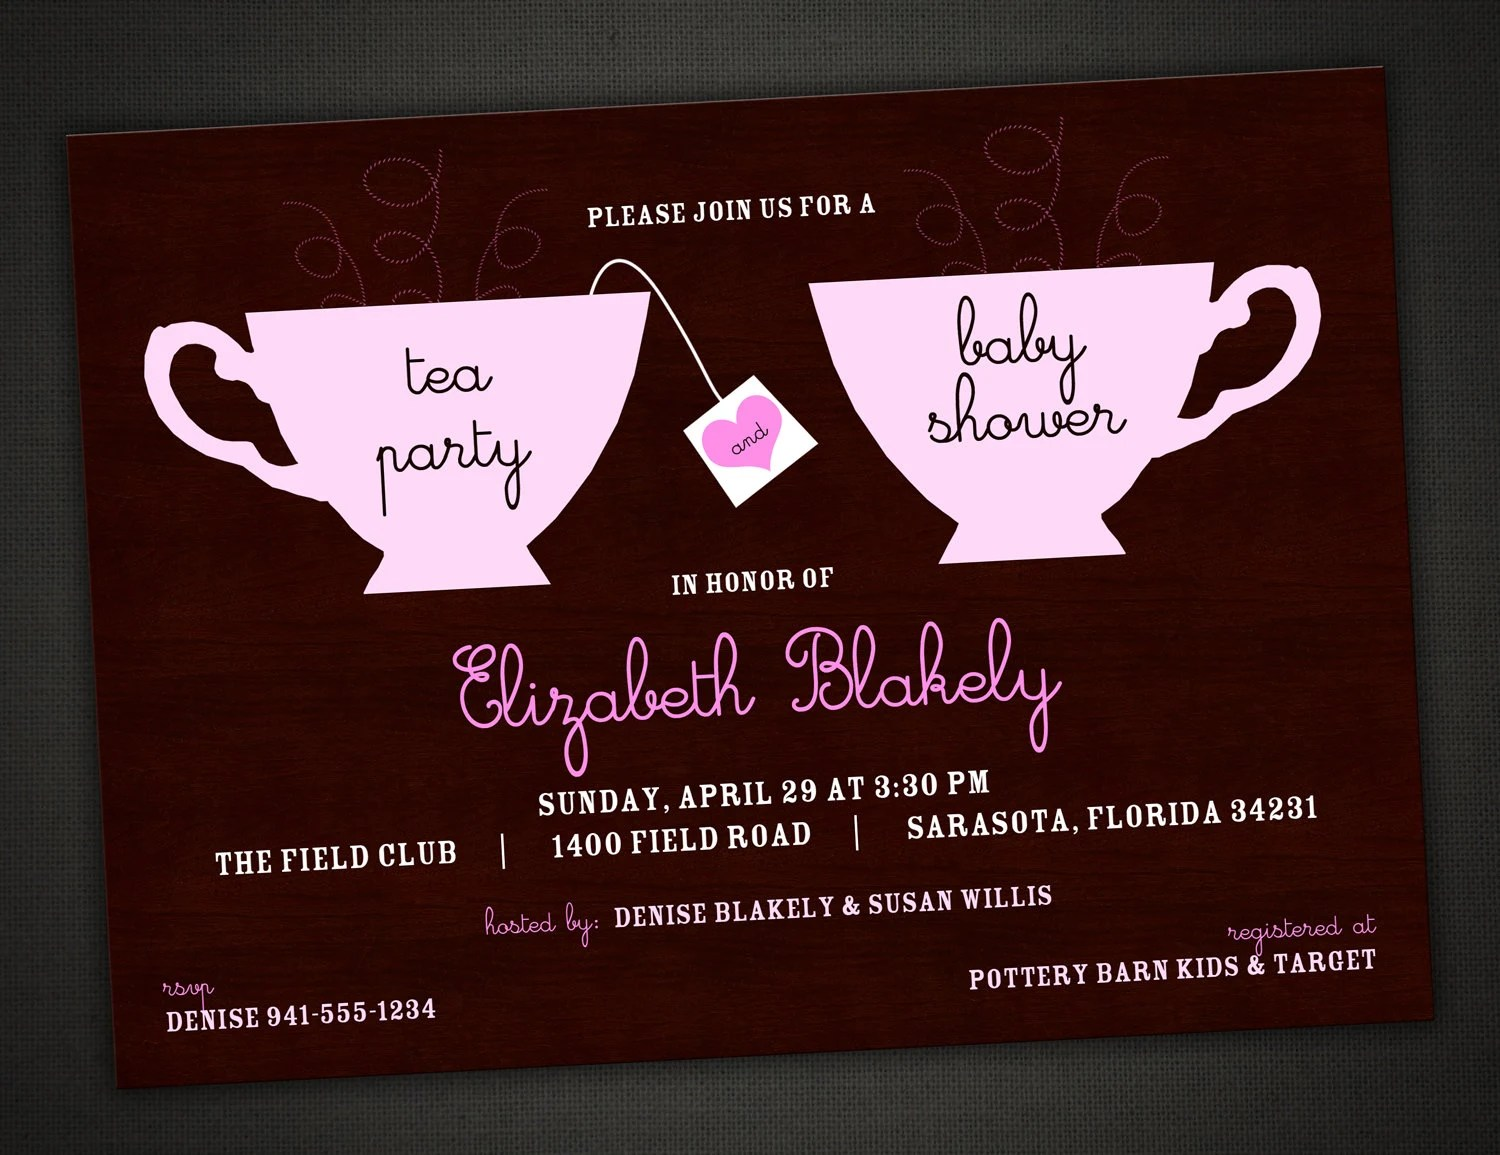 Tea Party Baby Shower Invitations